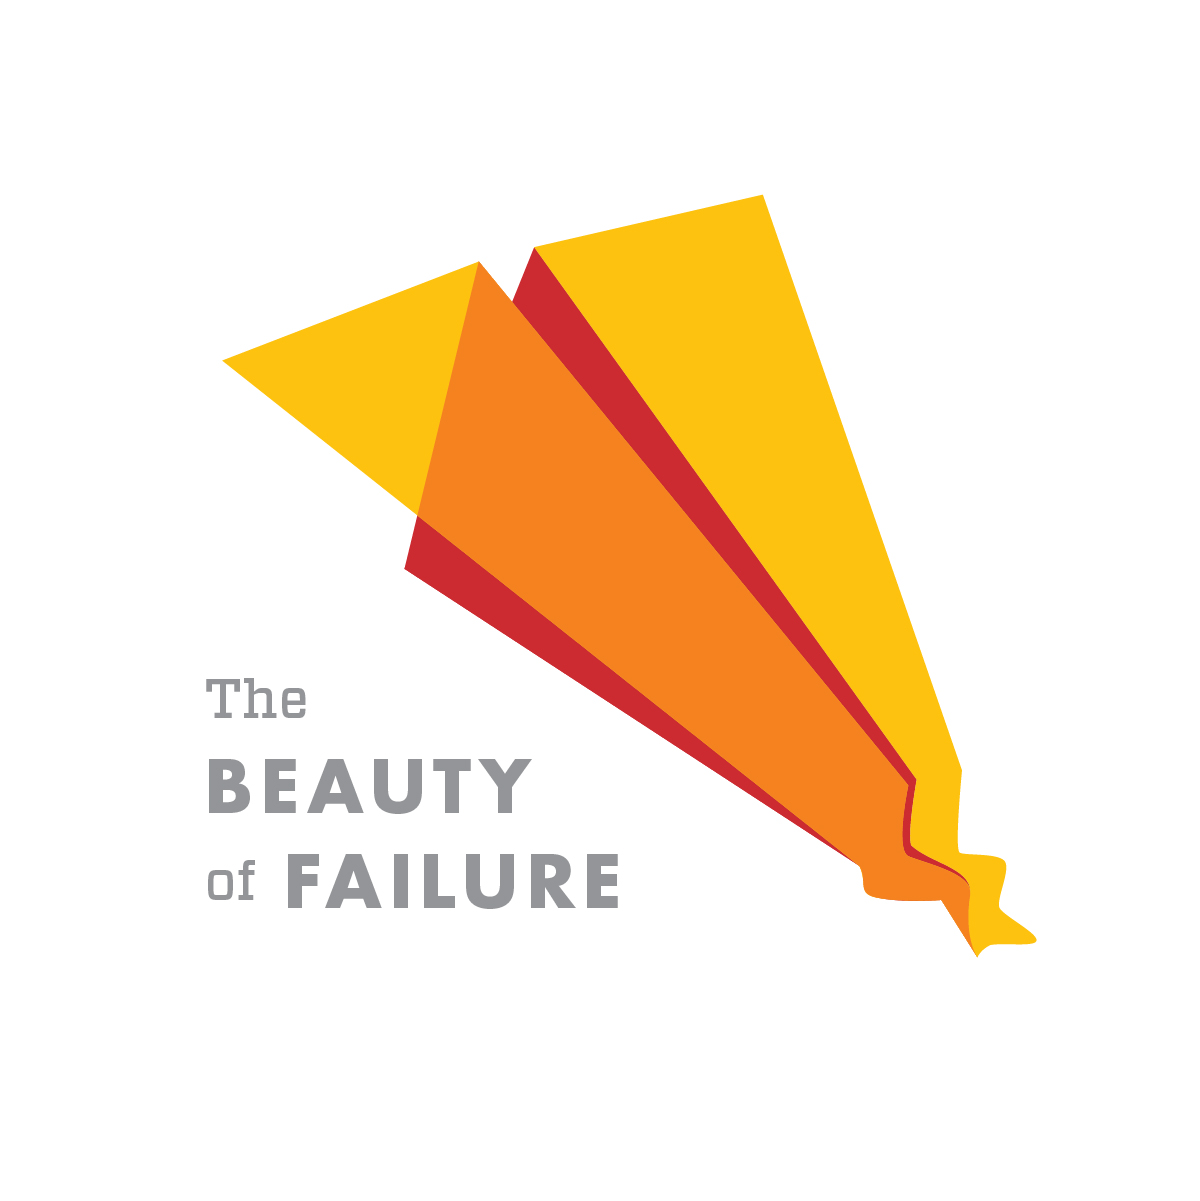 The Beauty of Failure graphic with paper air plane